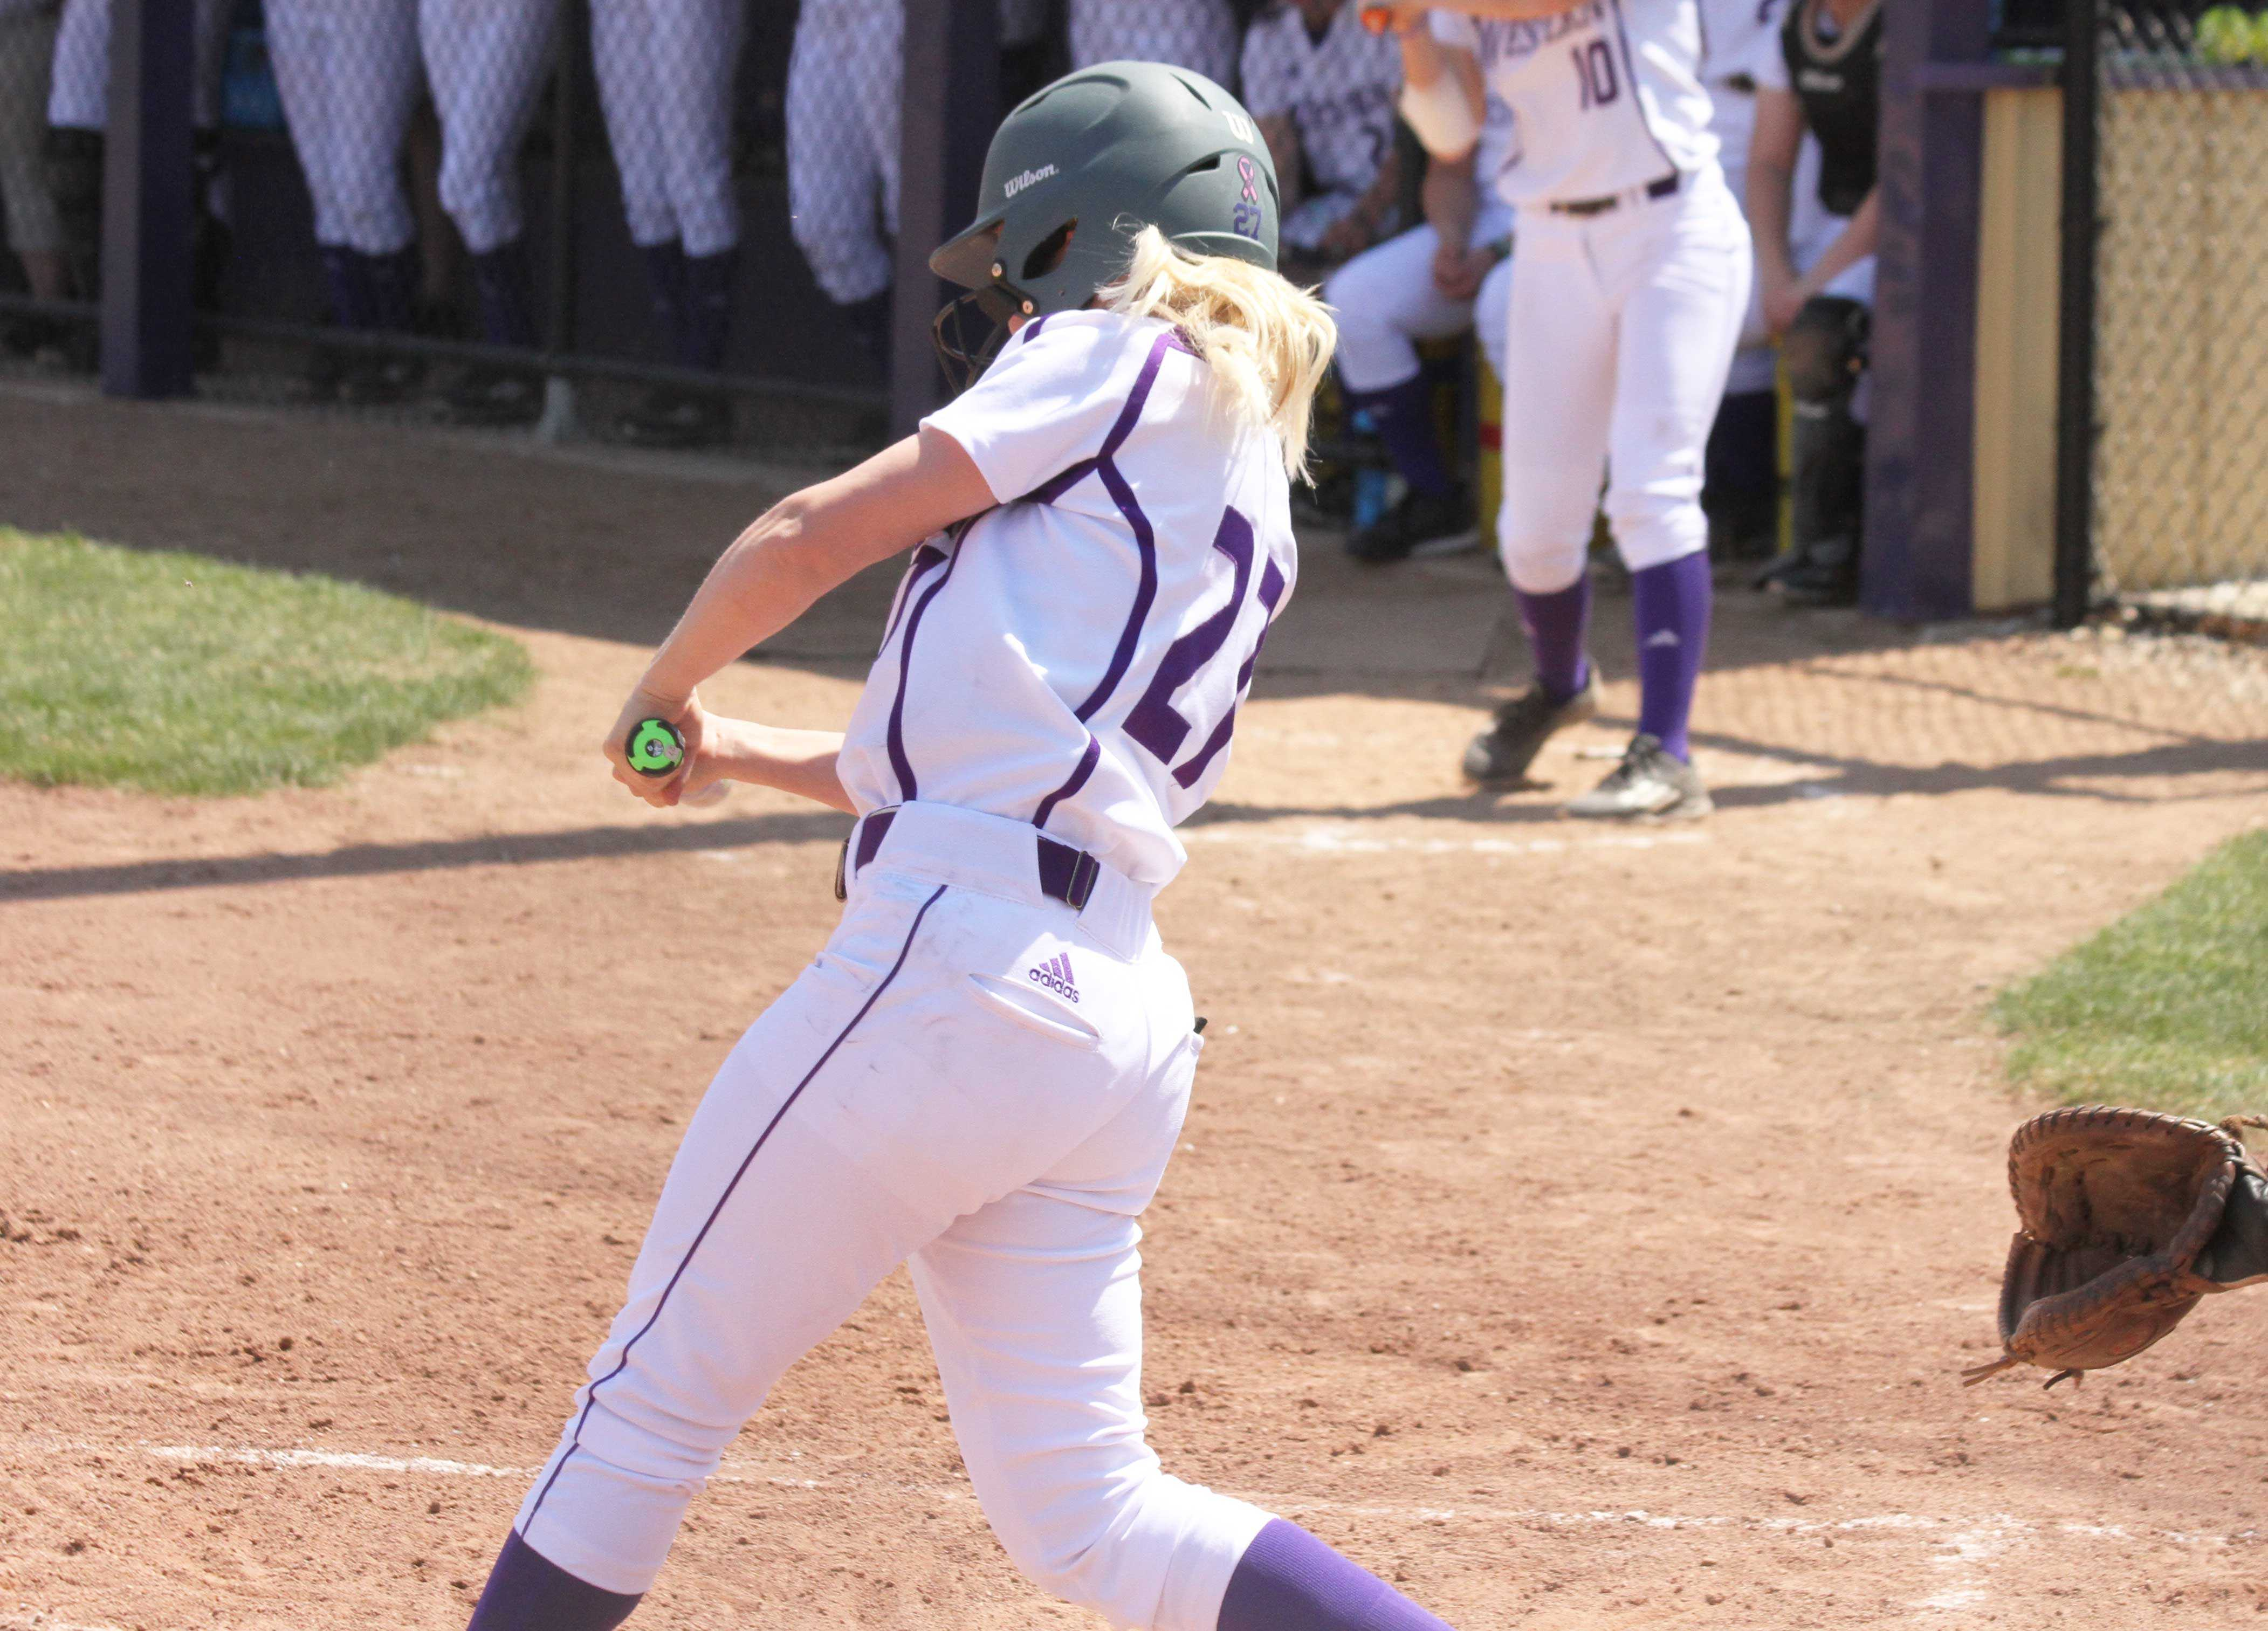 Tierney Bottino (18 RBIs) and the Leathernecks will have their hands full against NDSU's Jacquelyn Sertic this weekend.